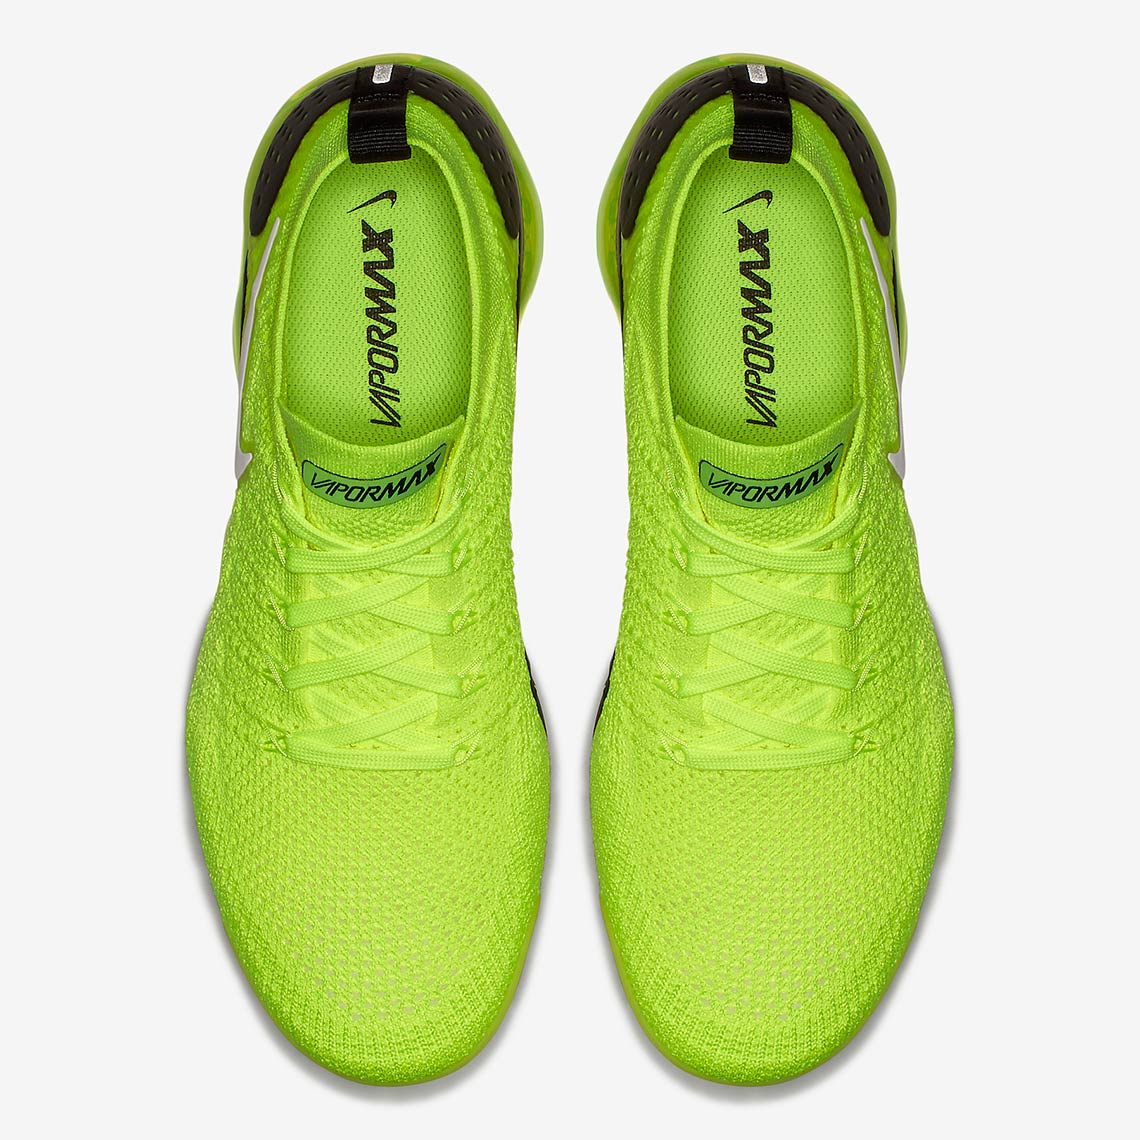 3eedb05ab3 Nike Vapormax 2. Release Date: July 5, 2018 $190. Color: Volt/White-Black  Style Code: 942842-700. Advertisement. Advertisement